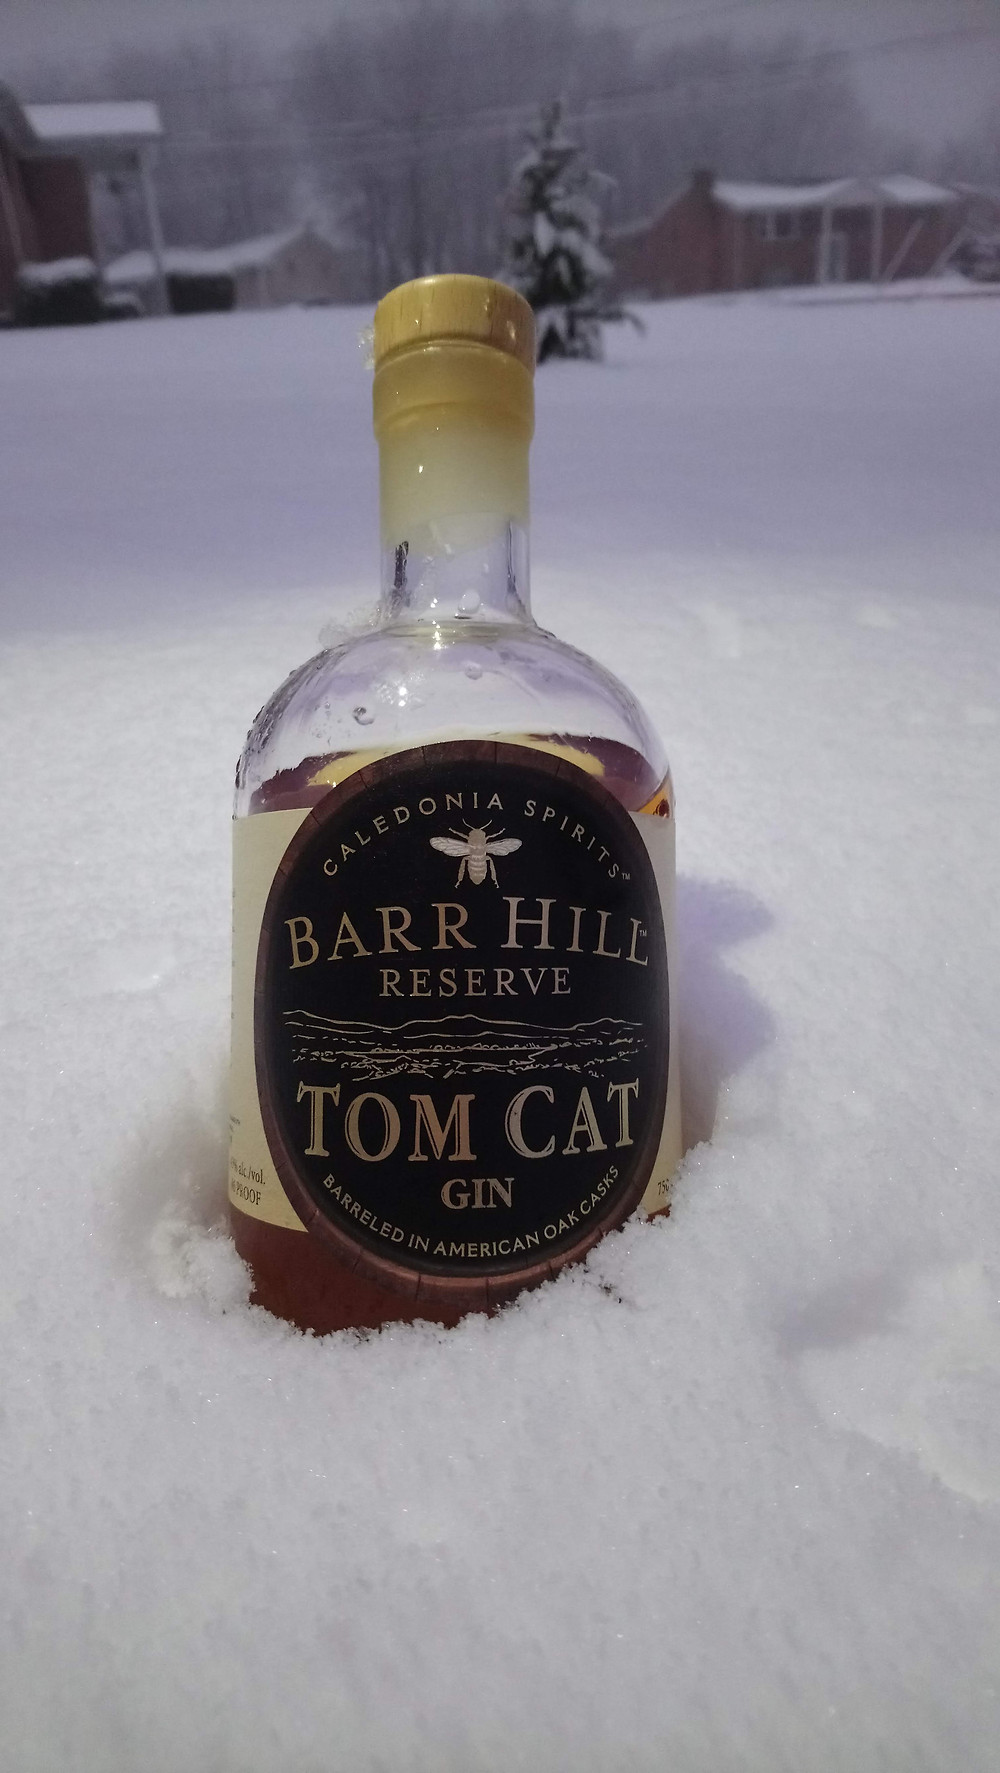 Tom Cat is an American Old Tom gin